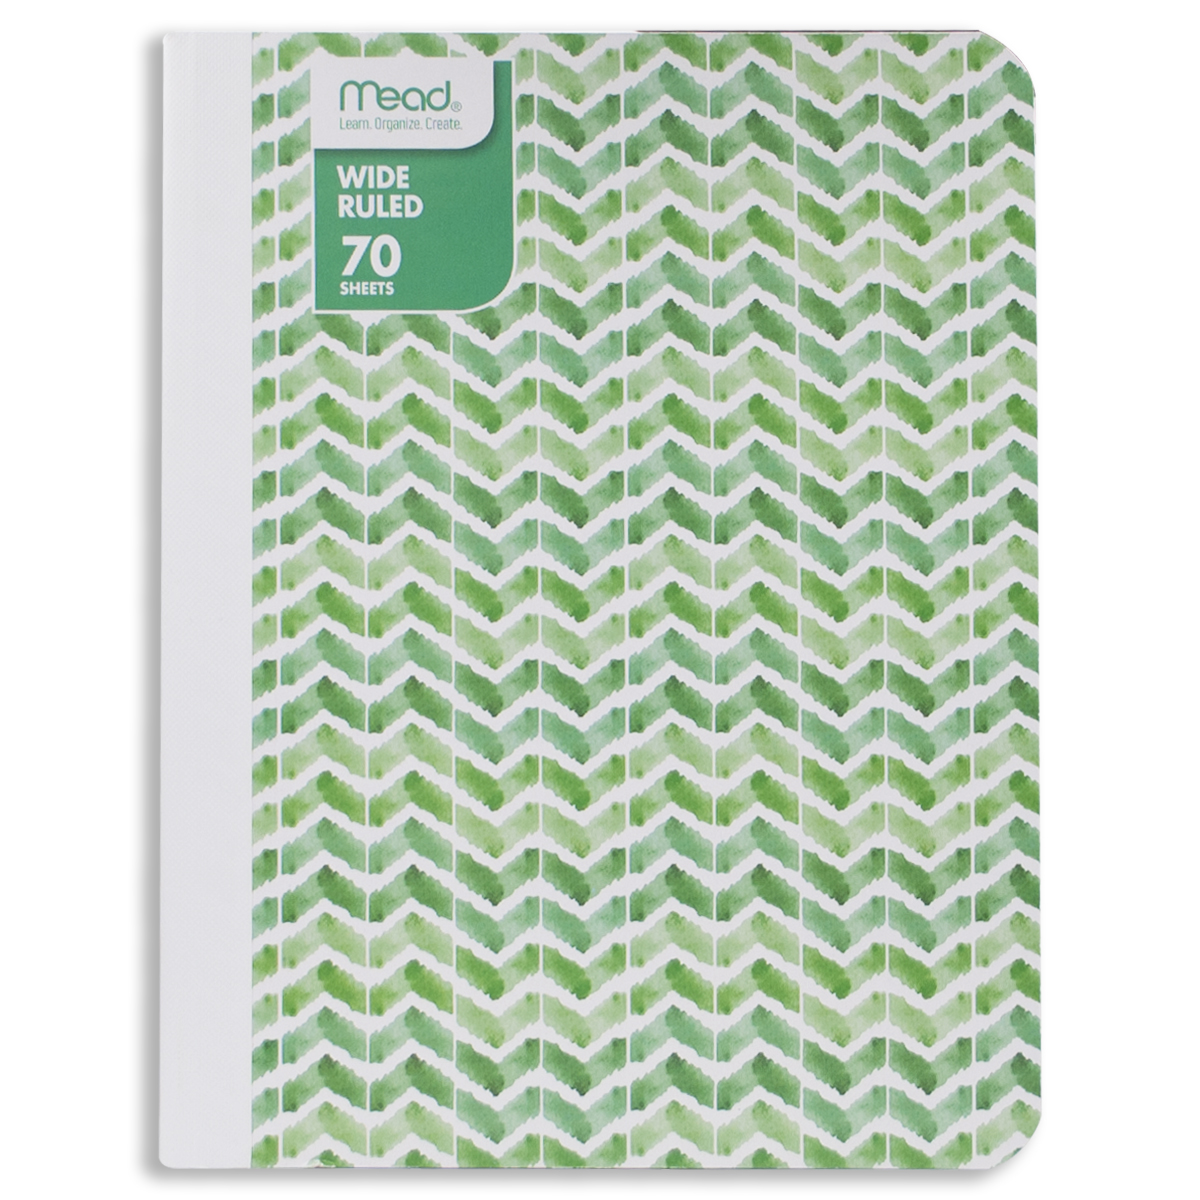 """Mead Composition Notebook, Wide Ruled, 70 Sheets (140 Pages), 9-3/4"""" x 7-1/2"""", Fashion Design"""